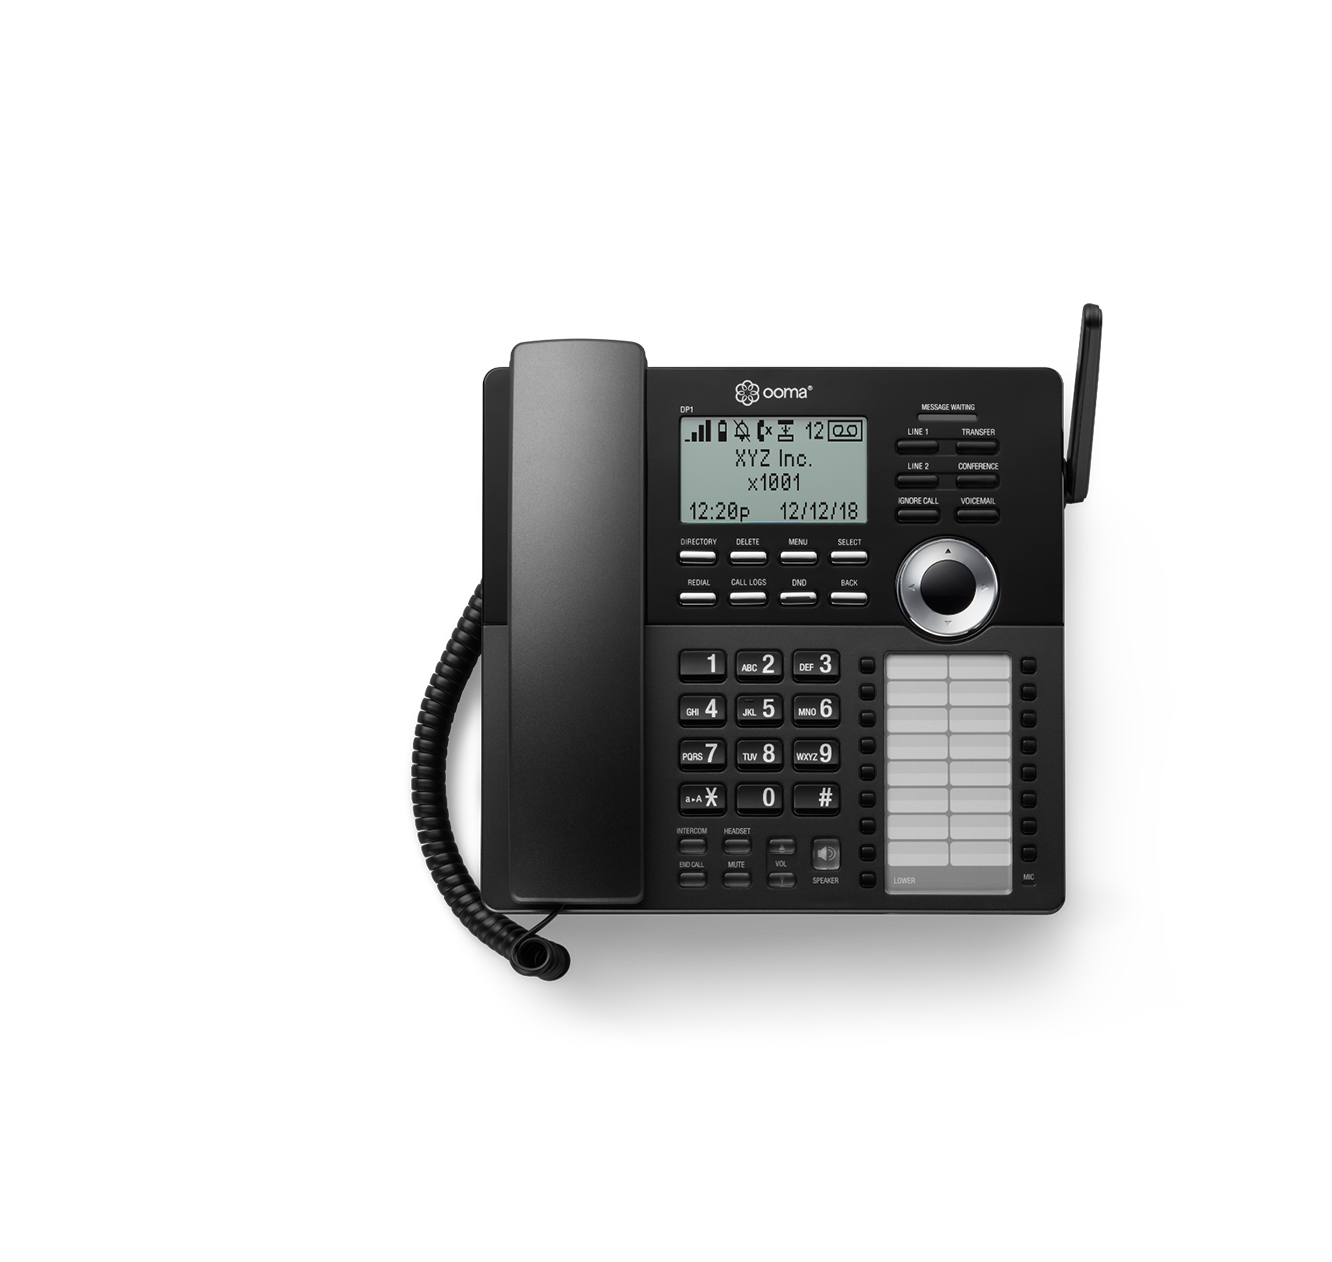 Ooma wireless DP-1 desk phone in black.